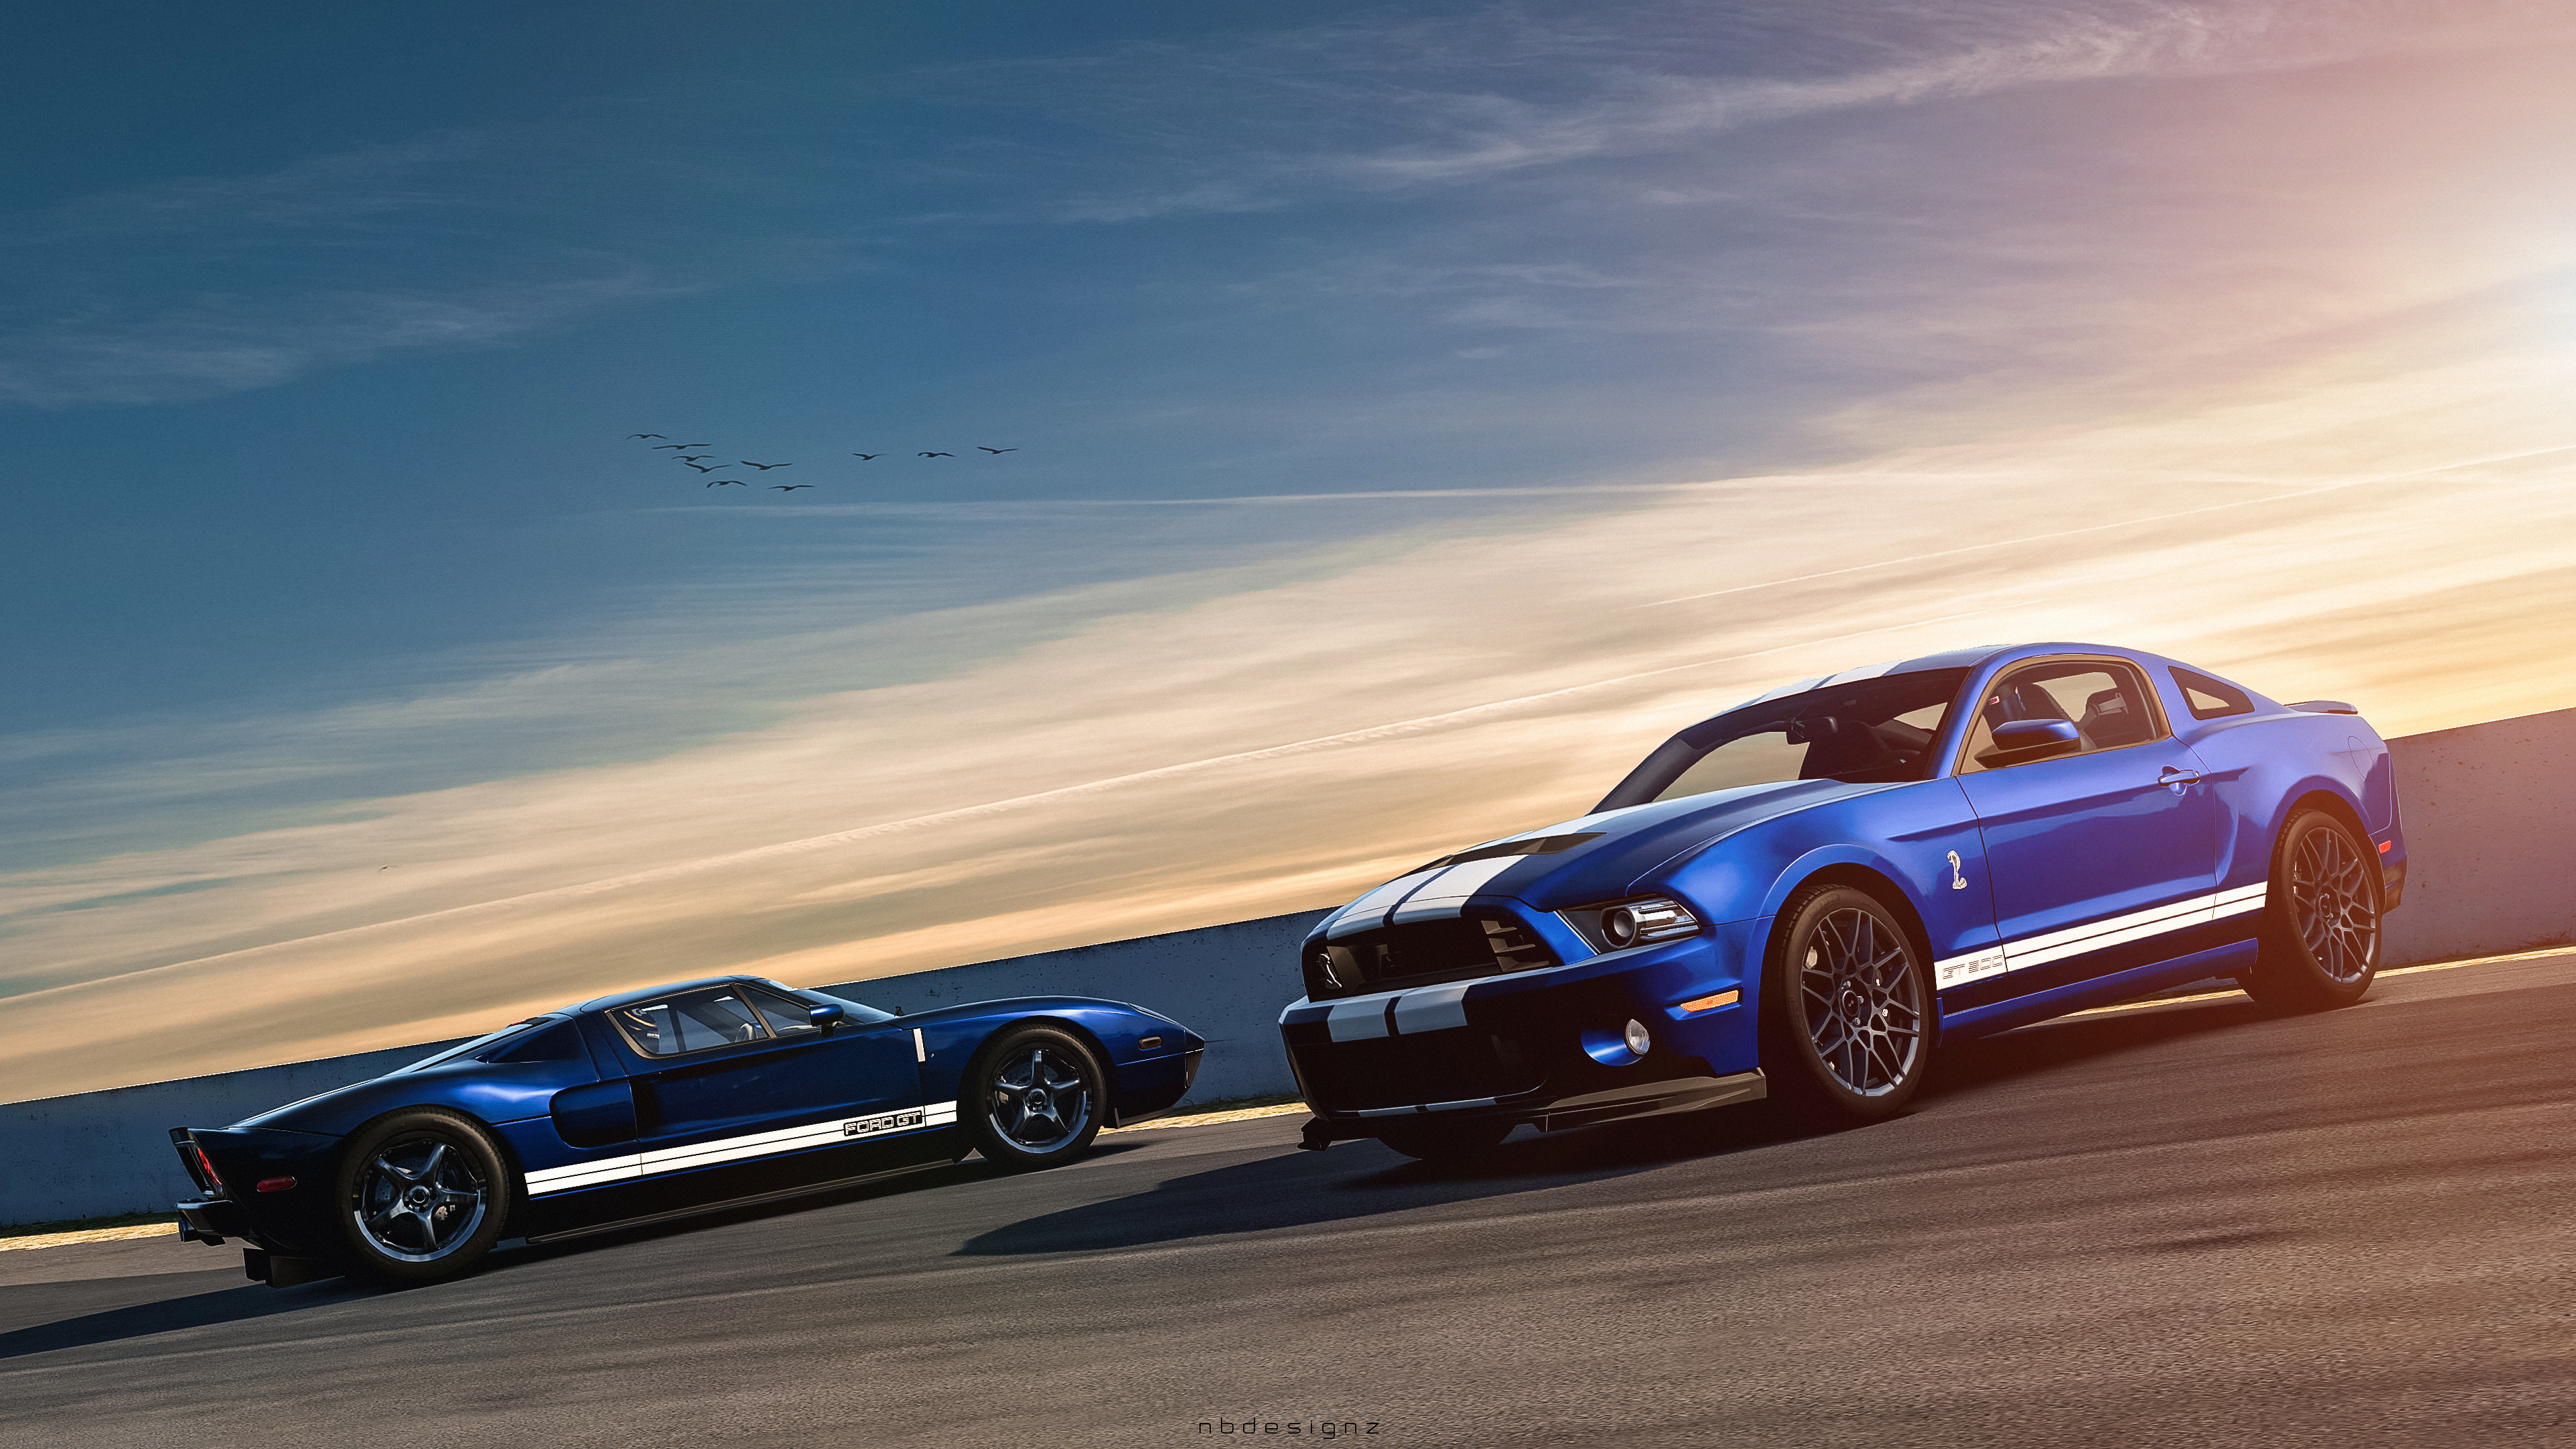 Ford Mustang Shelby GT500 Ford GT Wallpaper | HD Car ...